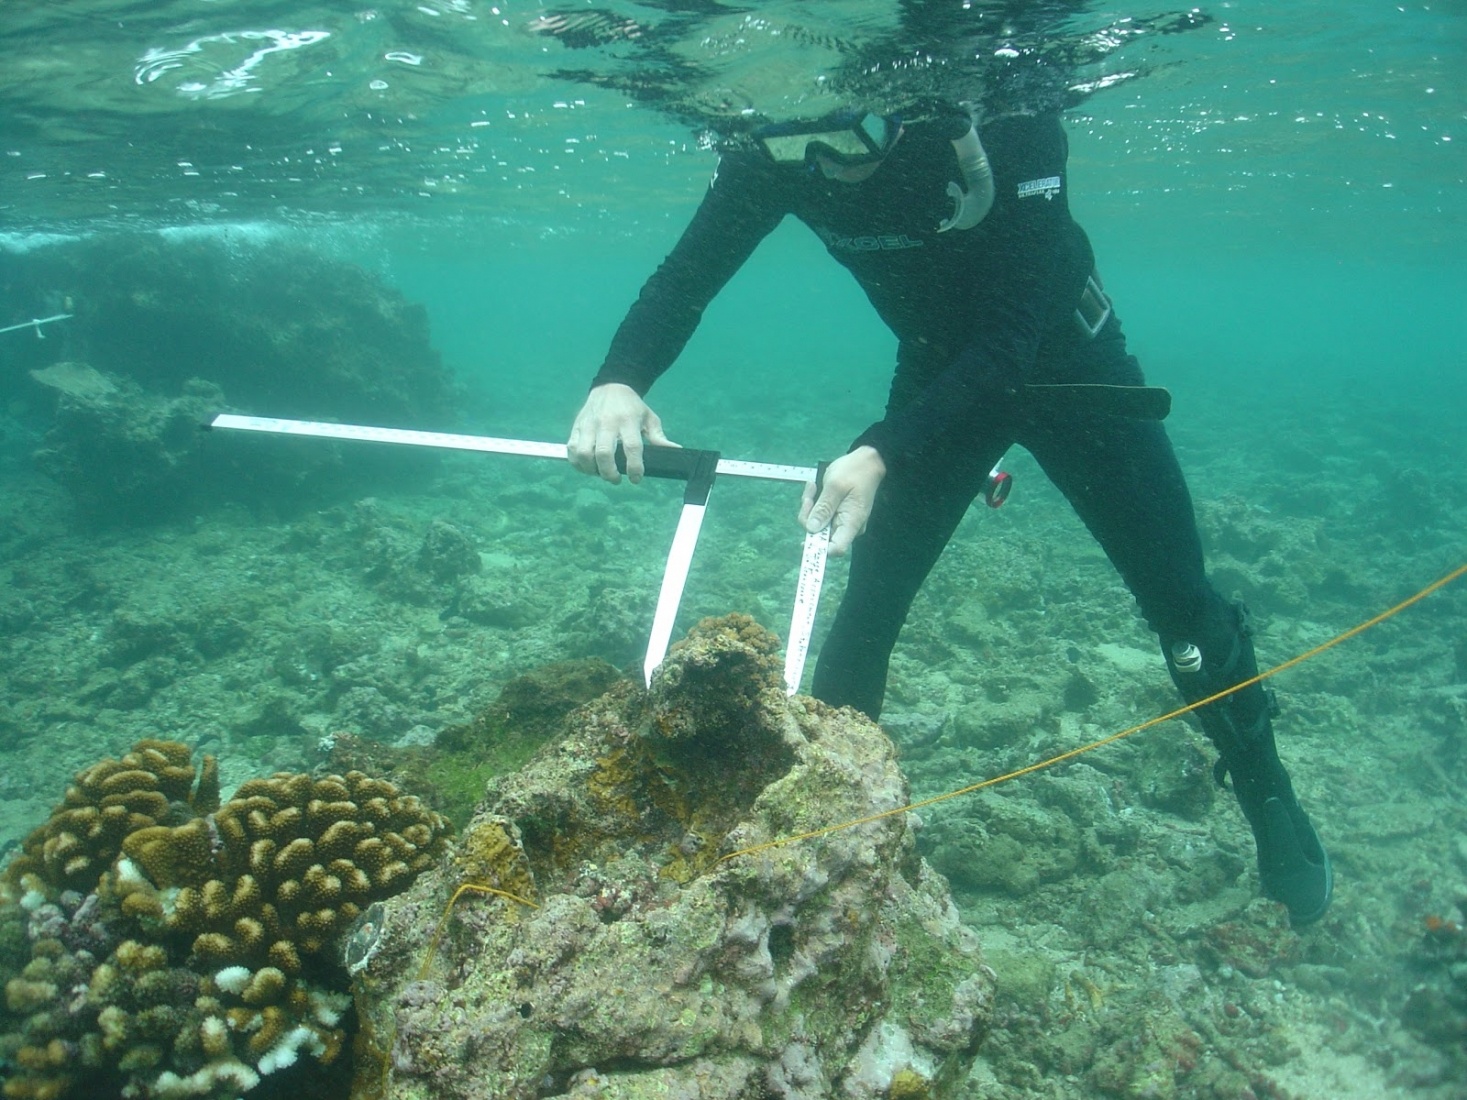 An underwater image of a diver using a measuring instrument to survey coral.